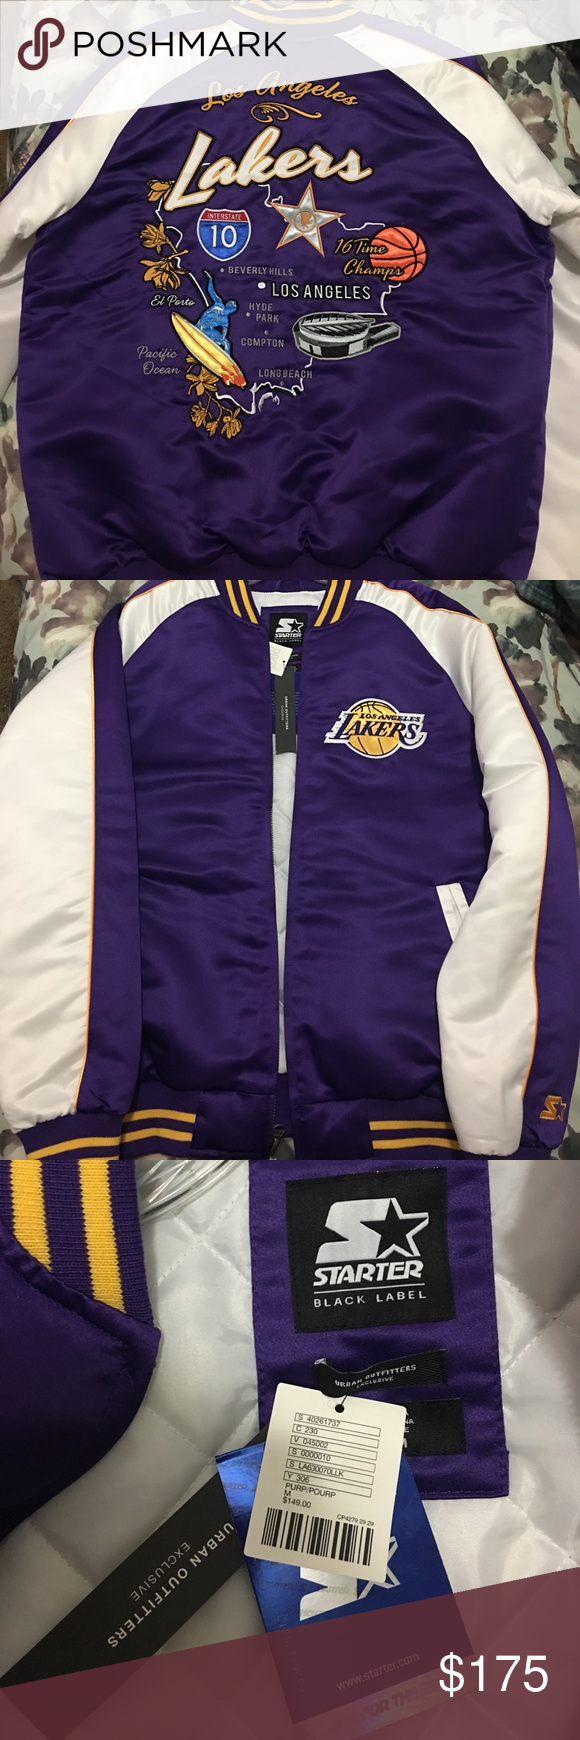 La Lakers Starter Jacket From Urban Outfitters Starter Brand Los Angeles Lakers Team Jacket Exclusively From Urba Urban Outfitters Jacket Jackets Team Jackets